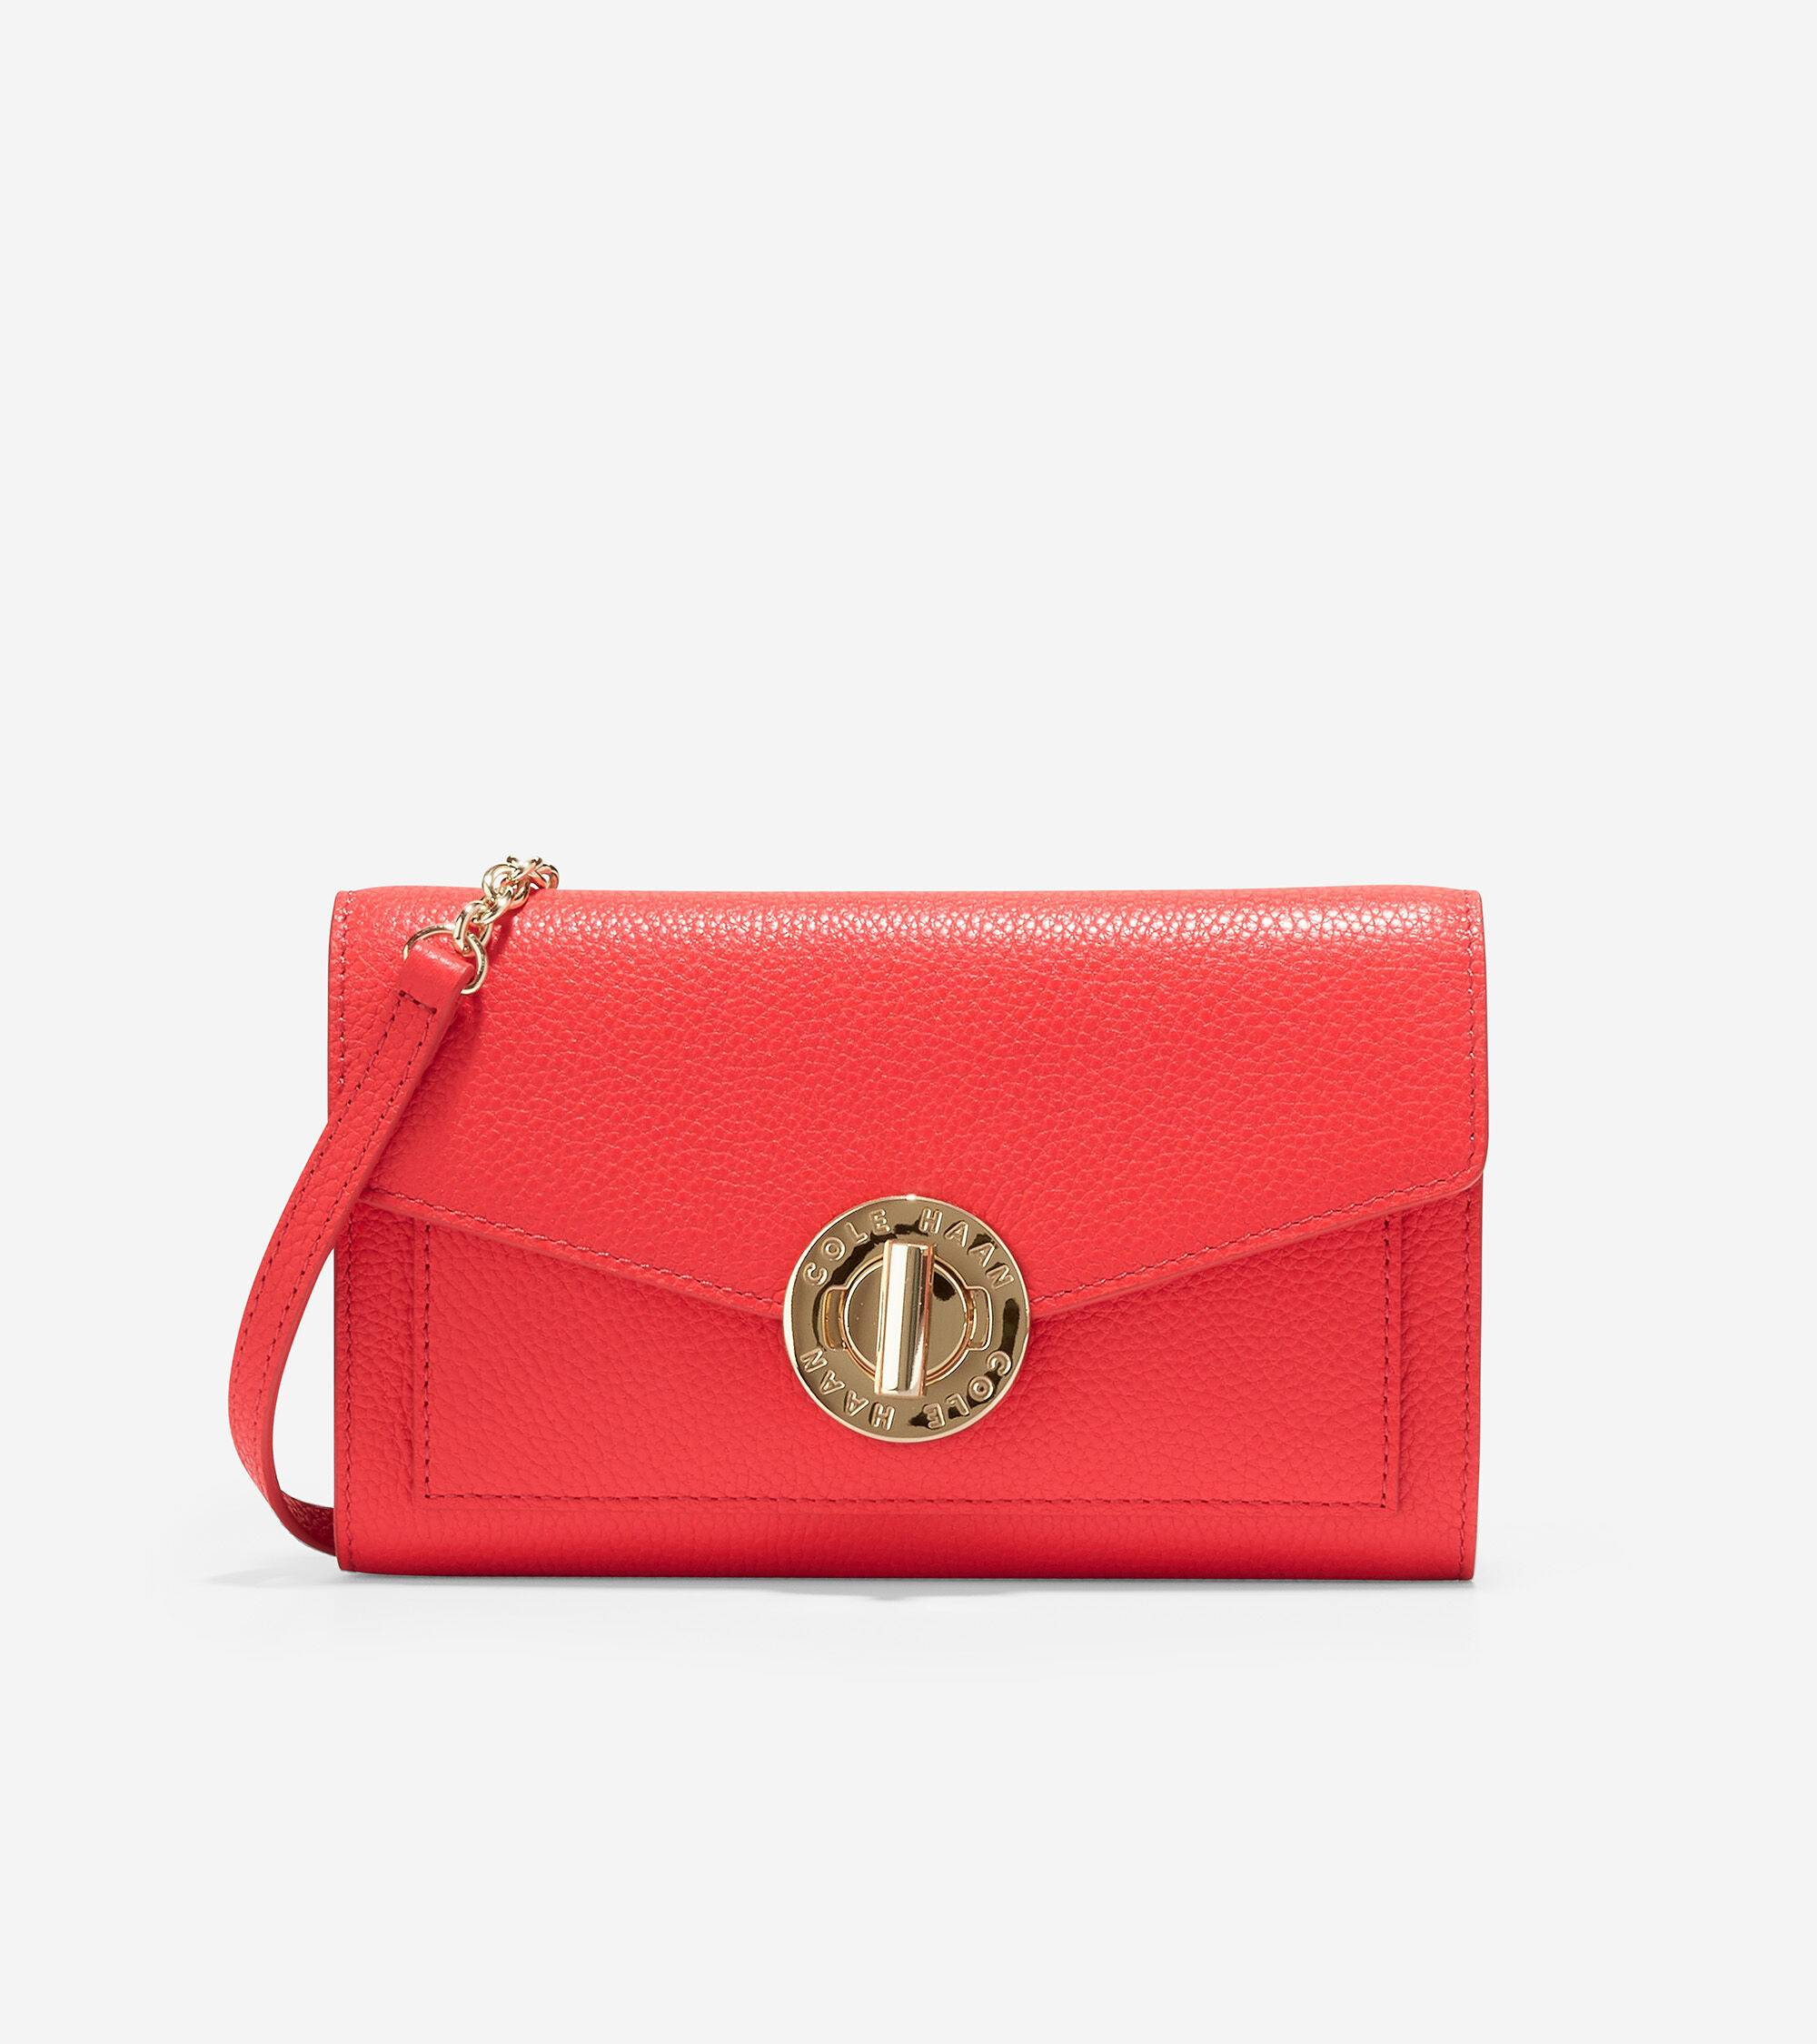 Cole Haan Turnlock Phone Case with Chain size OSFA Cole Haan Wallets for Women. Cayenne Turnlock Pho